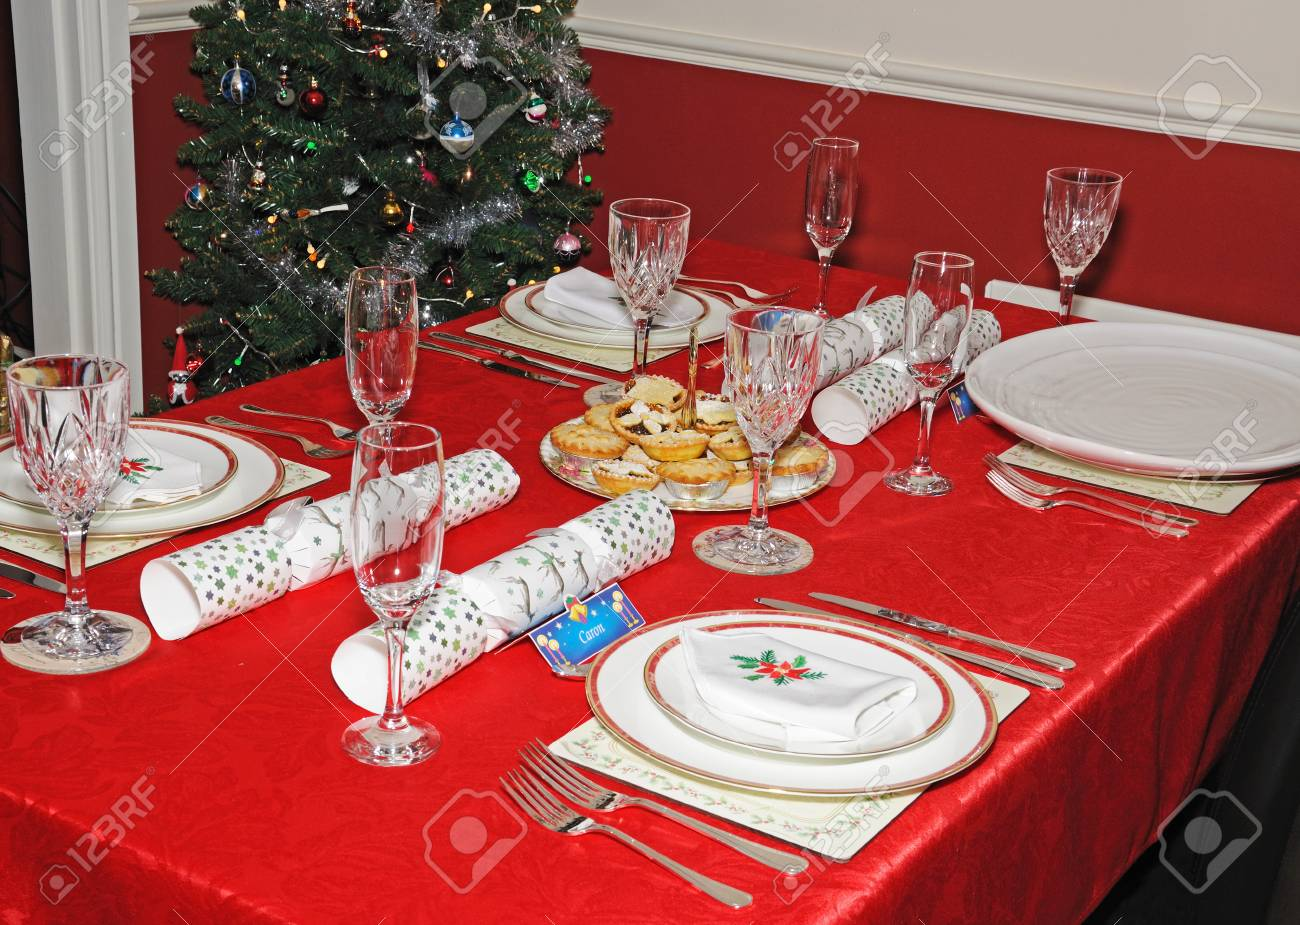 English Christmas table setting with mince pies in the centre and a Christmas tree to the & English Christmas Table Setting With Mince Pies In The Centre ...